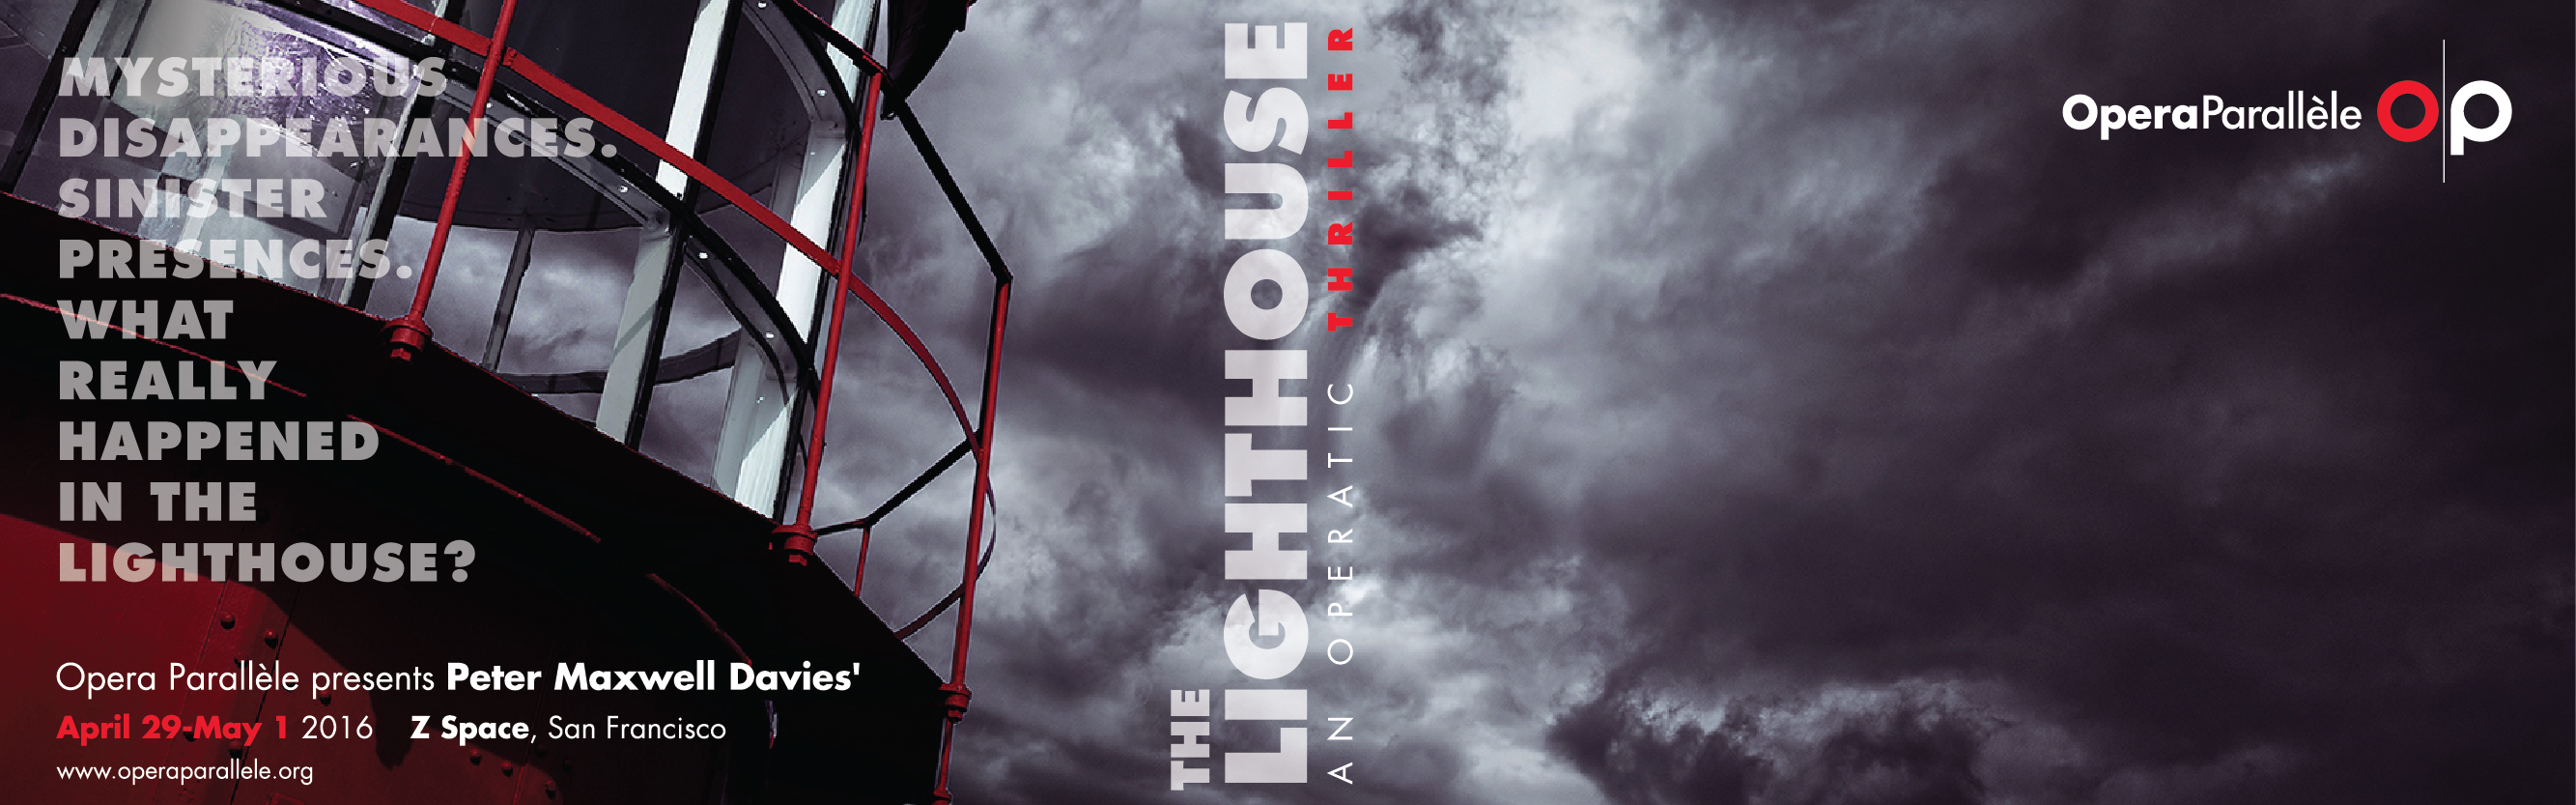 TheLighthouse Opera Parallele Banner_Propp+Guerin